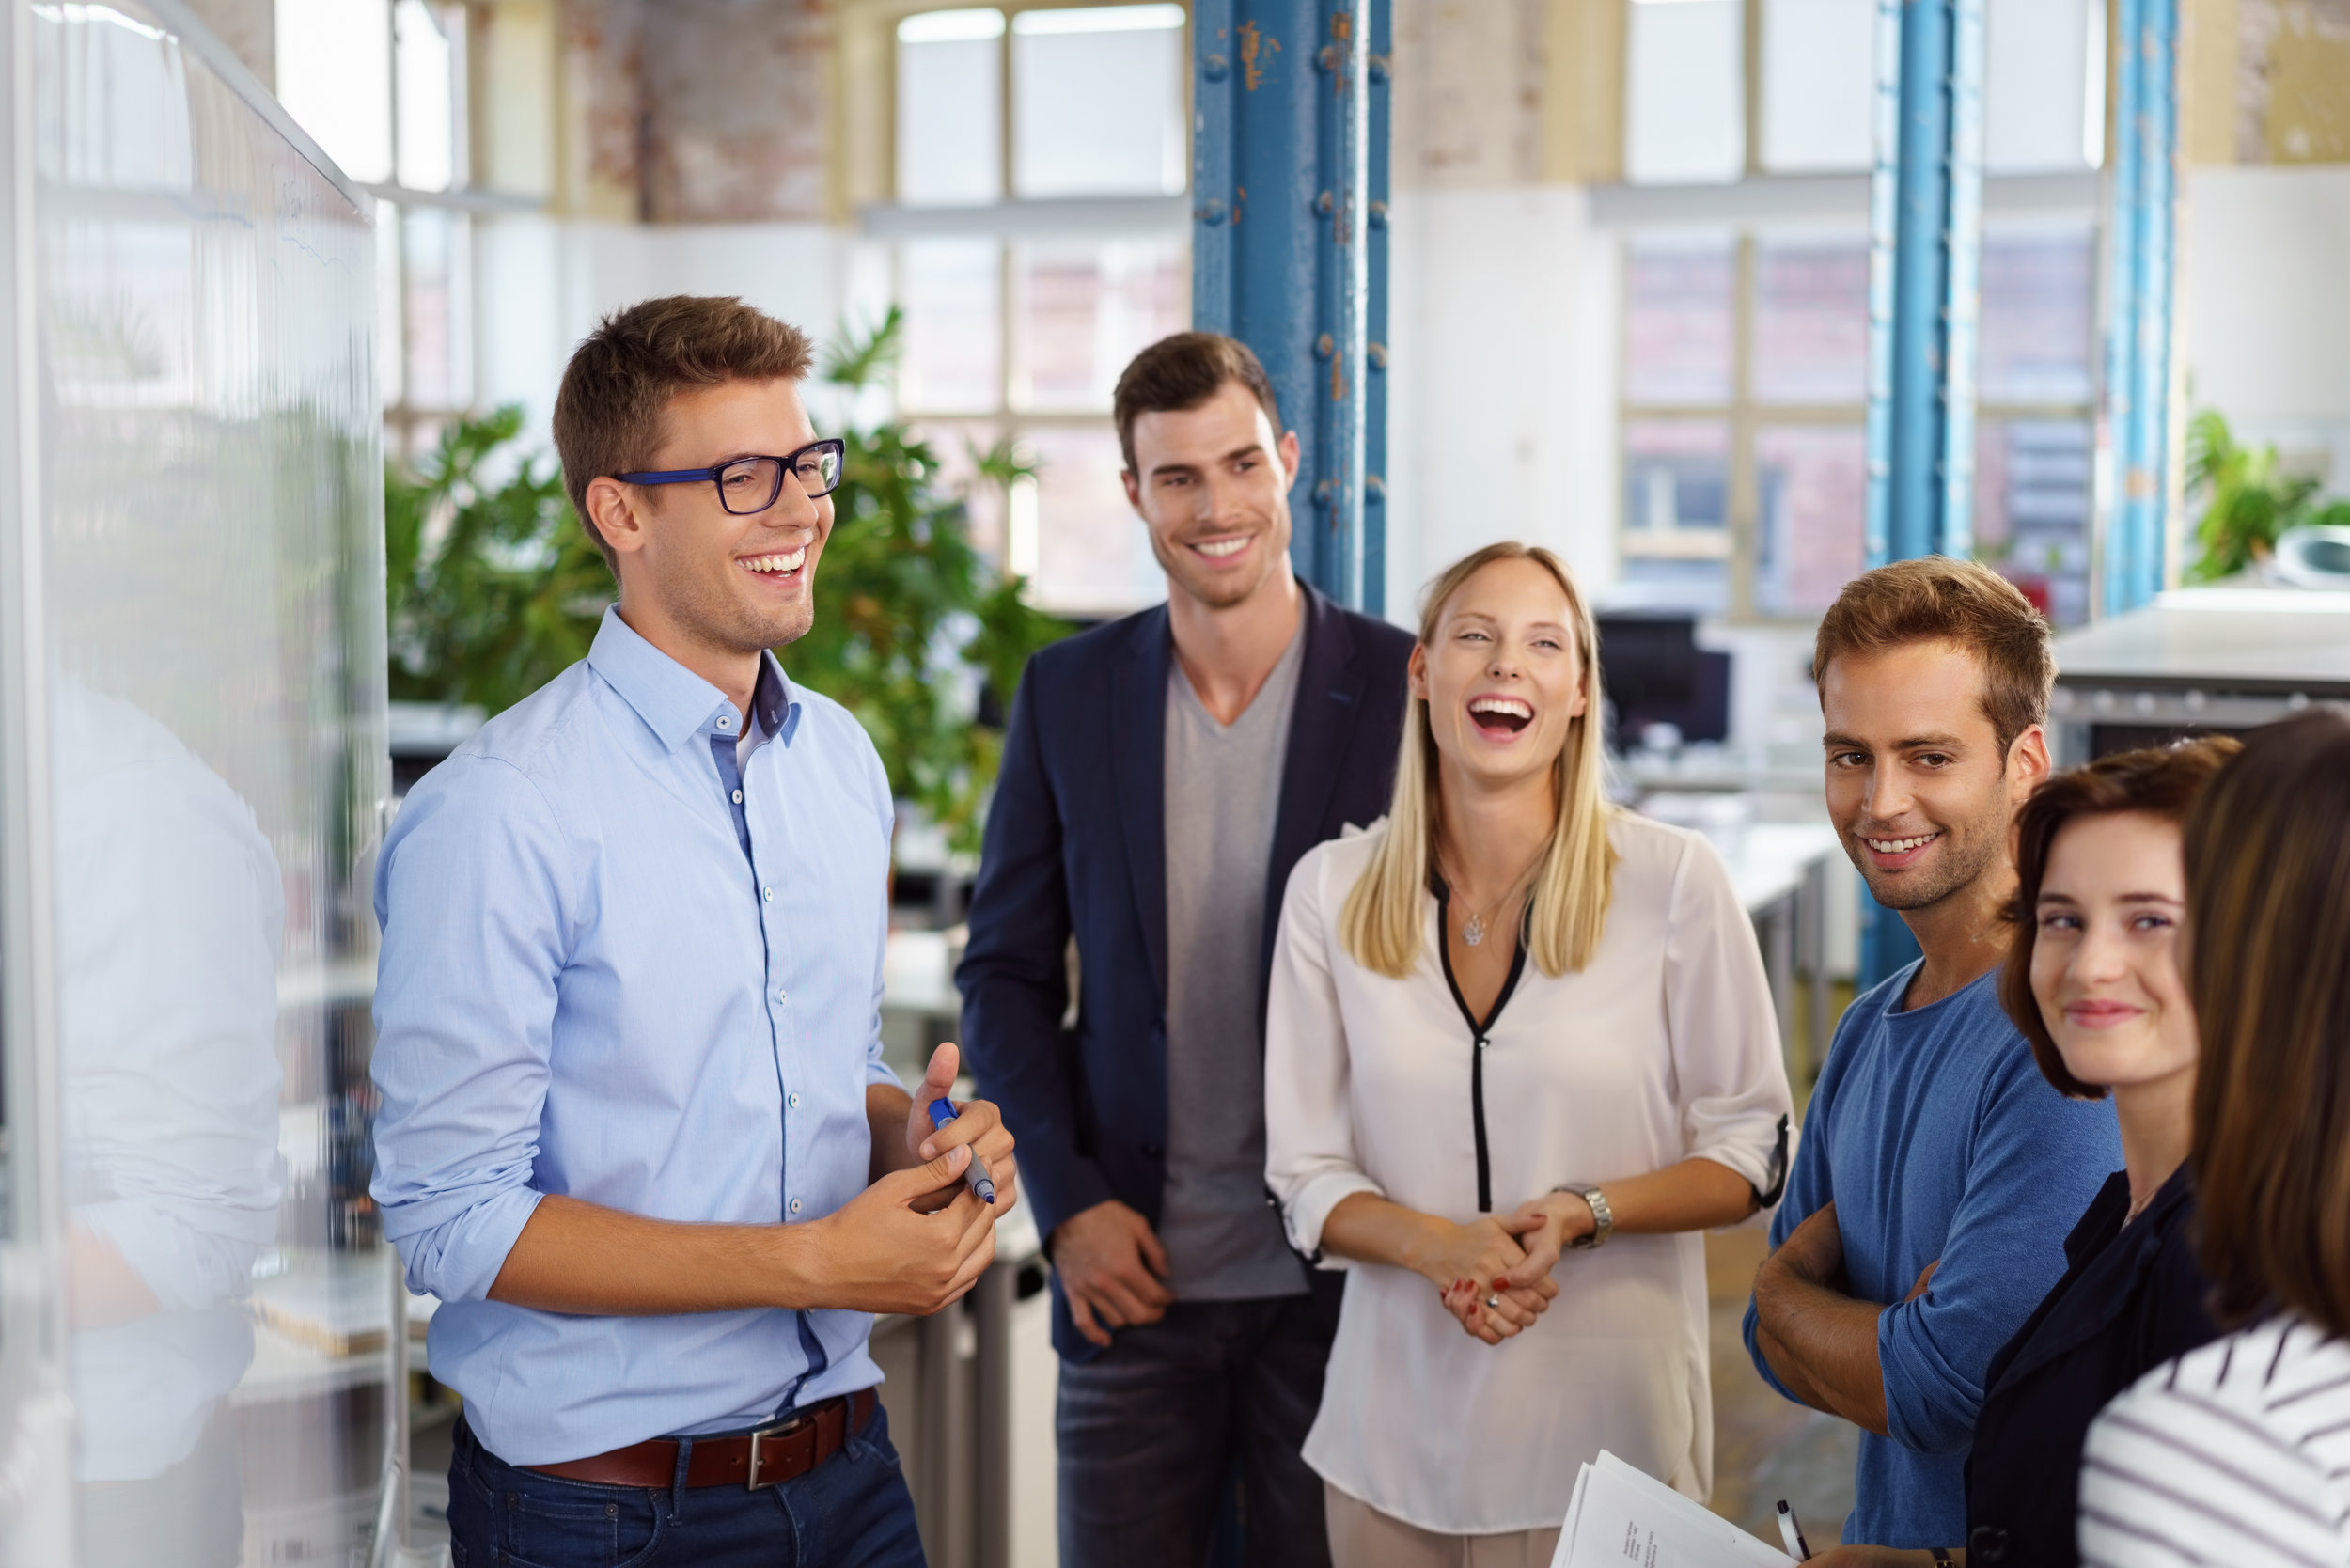 Personal and Group Coaching - Effective coaching can develop employee competence, diagnose and correct performance or behavioral problems, and foster productive relationships. Let us help you tap into the hidden motivation of your workforce.